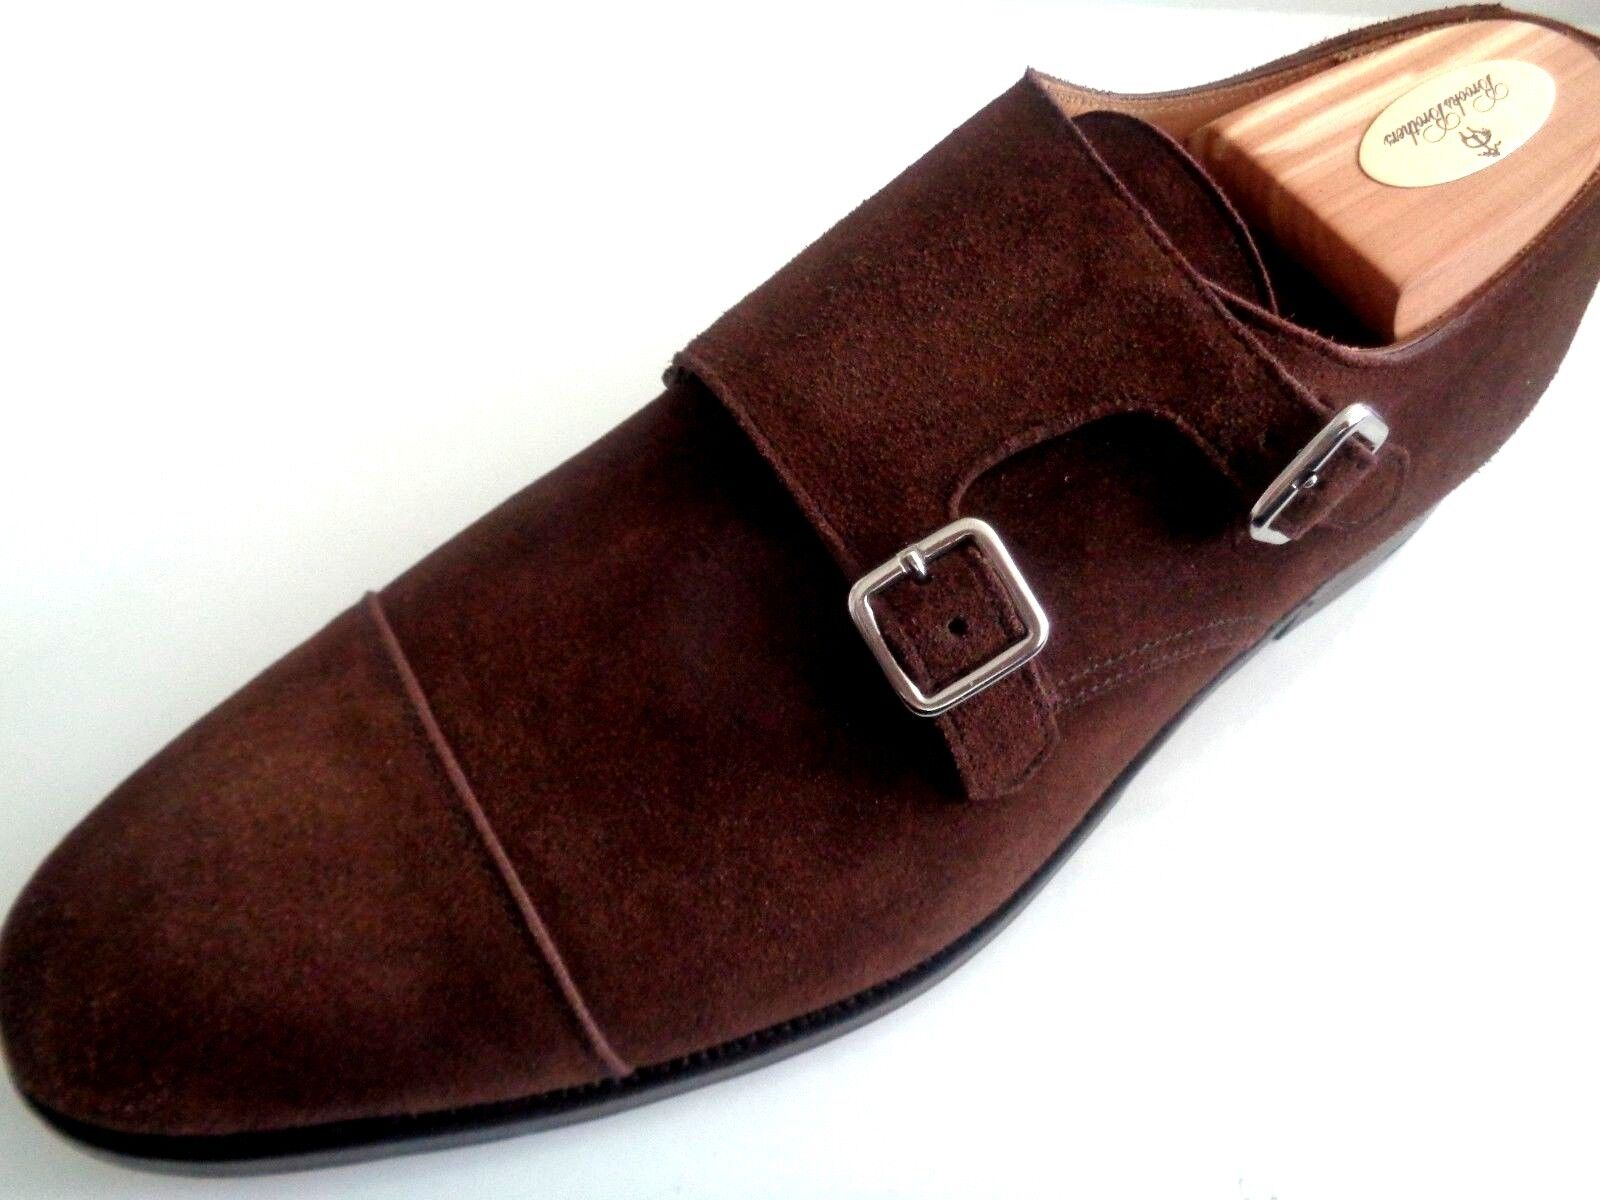 NIB CROCKETT AND JONES FOR PEAL & CO SUEDE SHOES. HAND MADE IN ENGLAND.